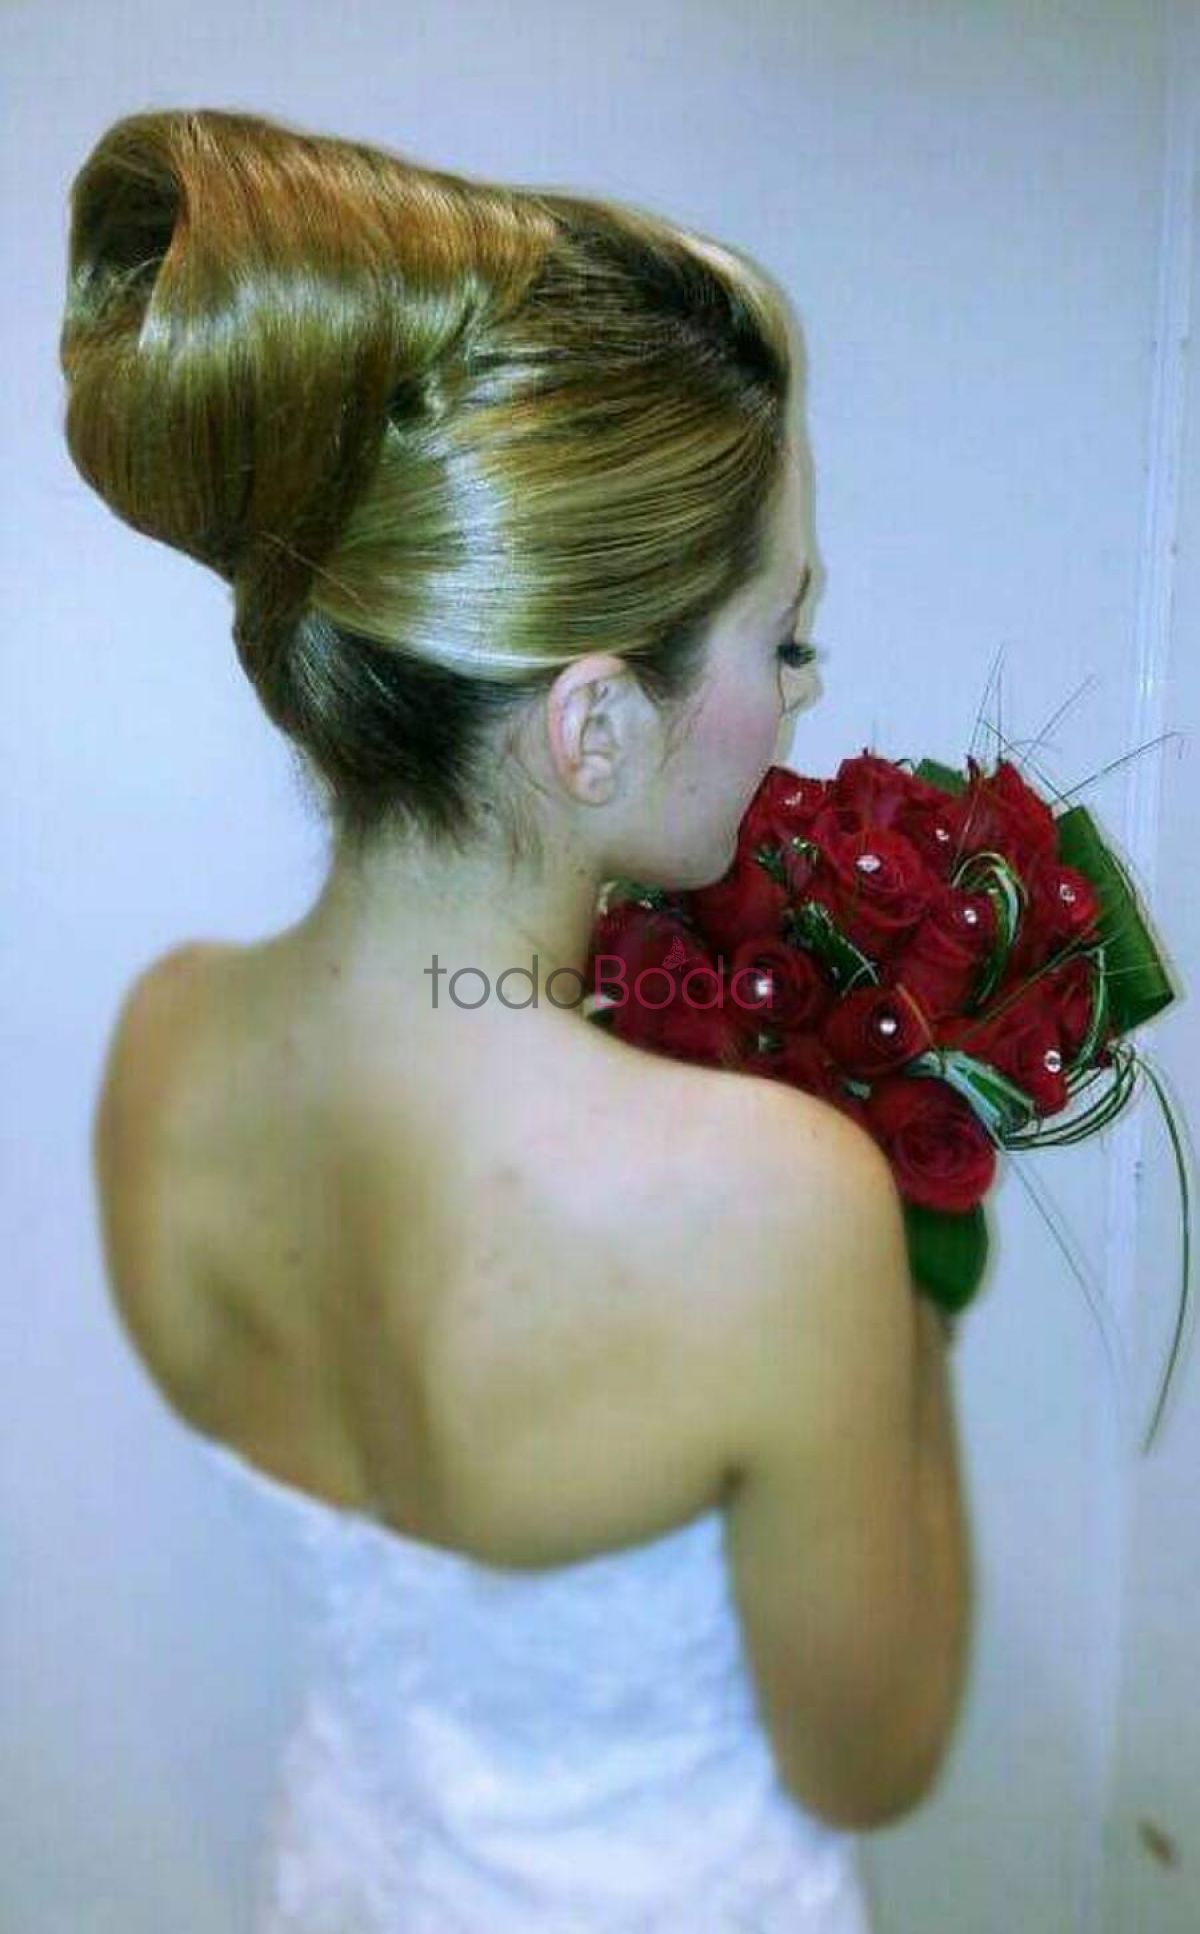 Tu boda en Lora Make Up & Hair Arts 1